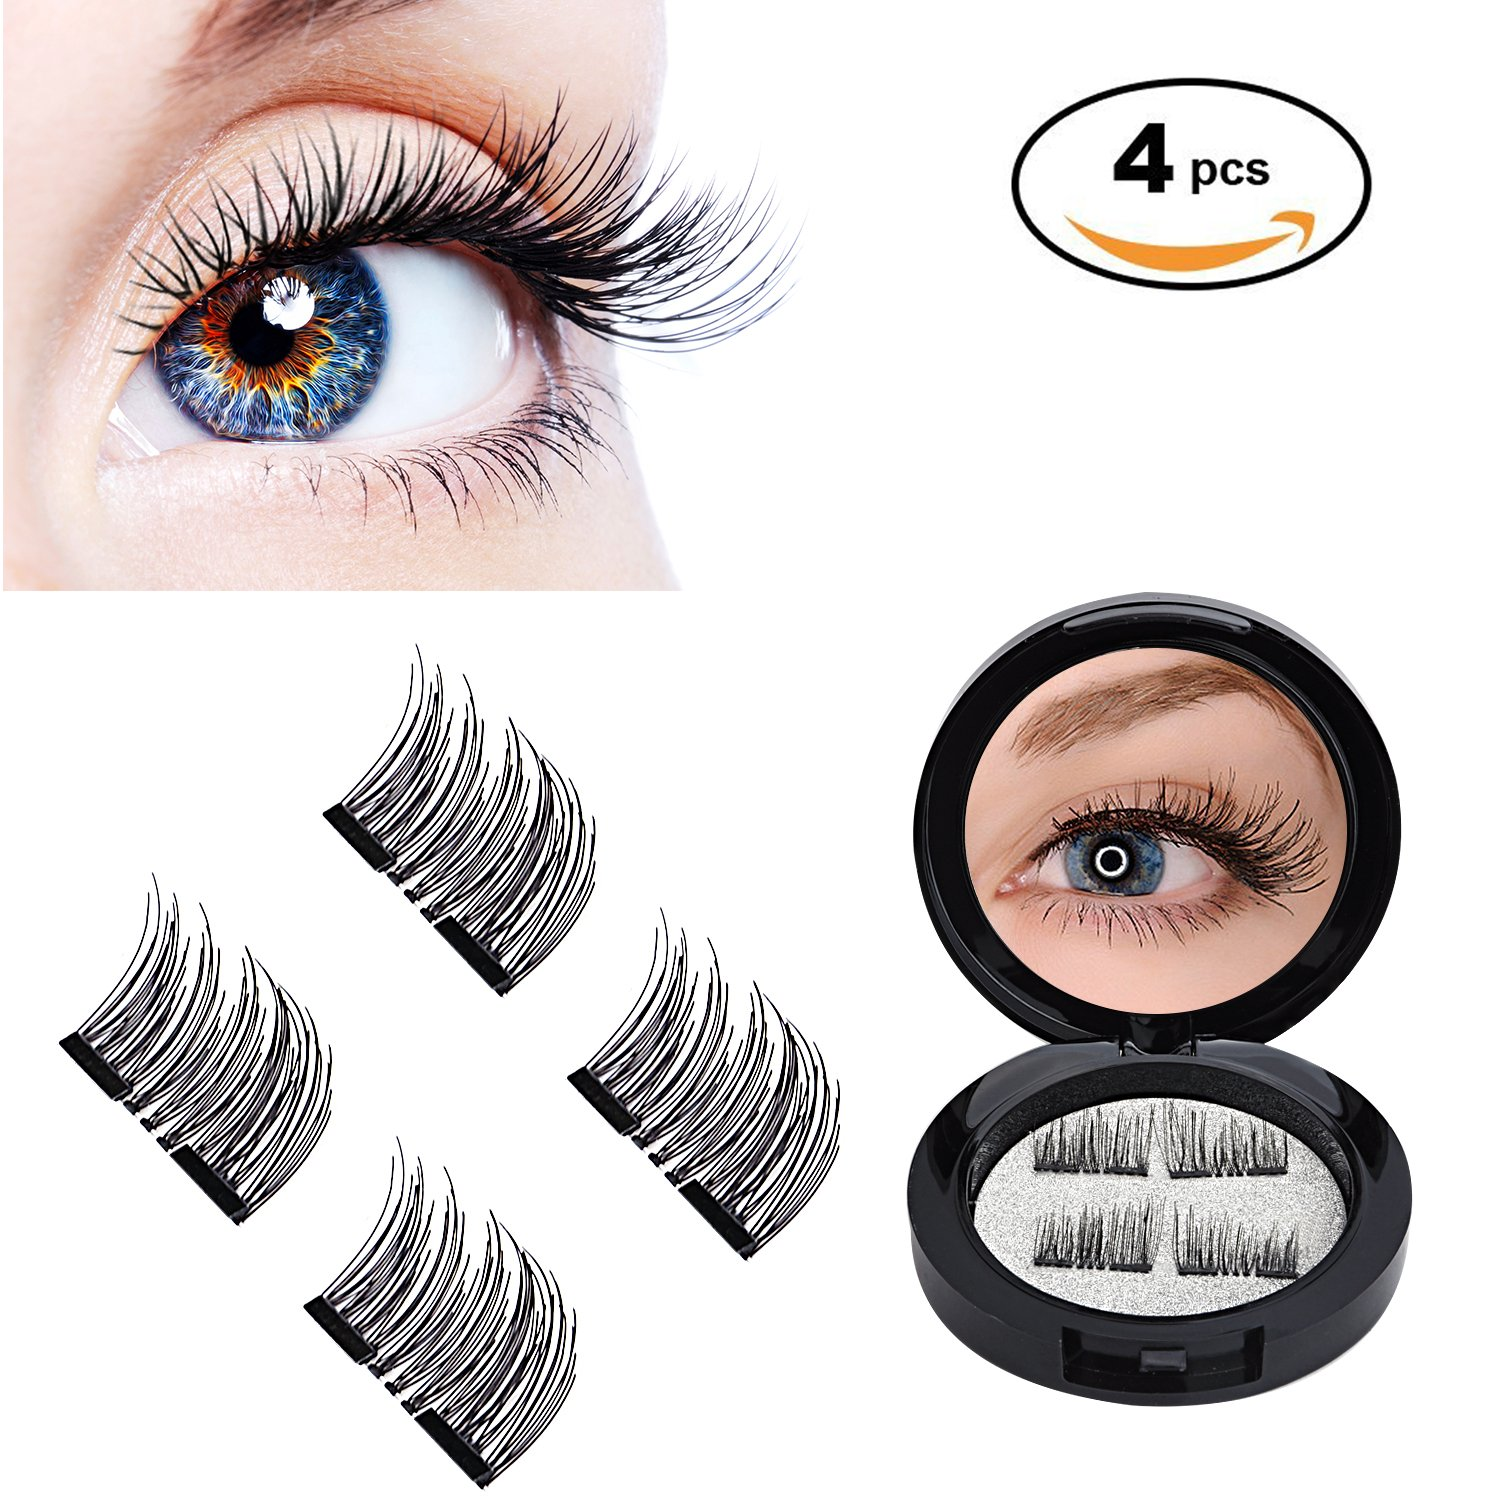 3D Magnetic Eyelashes by WEBSUN, Reusable False Eyelashes for Natural Look (1 Pair 4 Pieces), No Glue Required Fake Mink Lashes